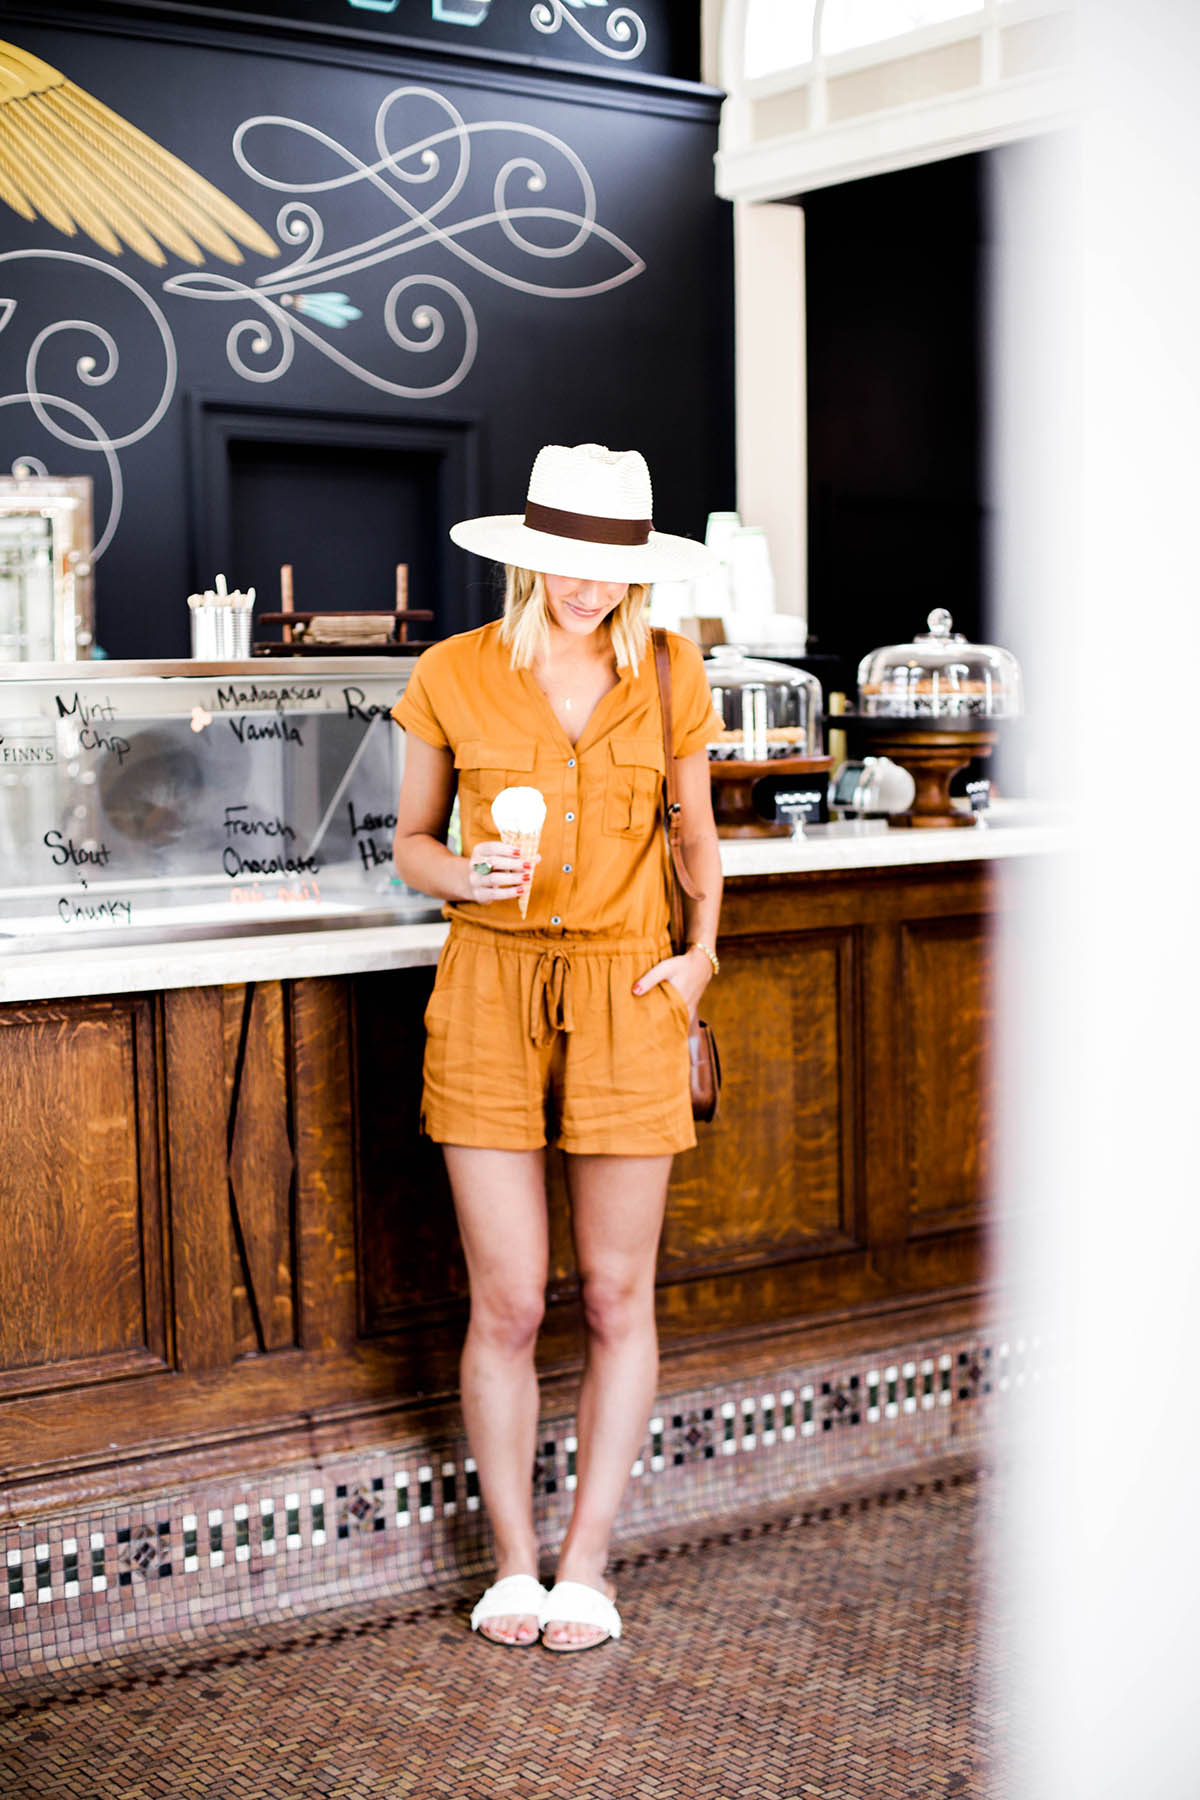 Amanda Holstein in Old Navy romper and woven fedora hat at Guerneville Bank Club